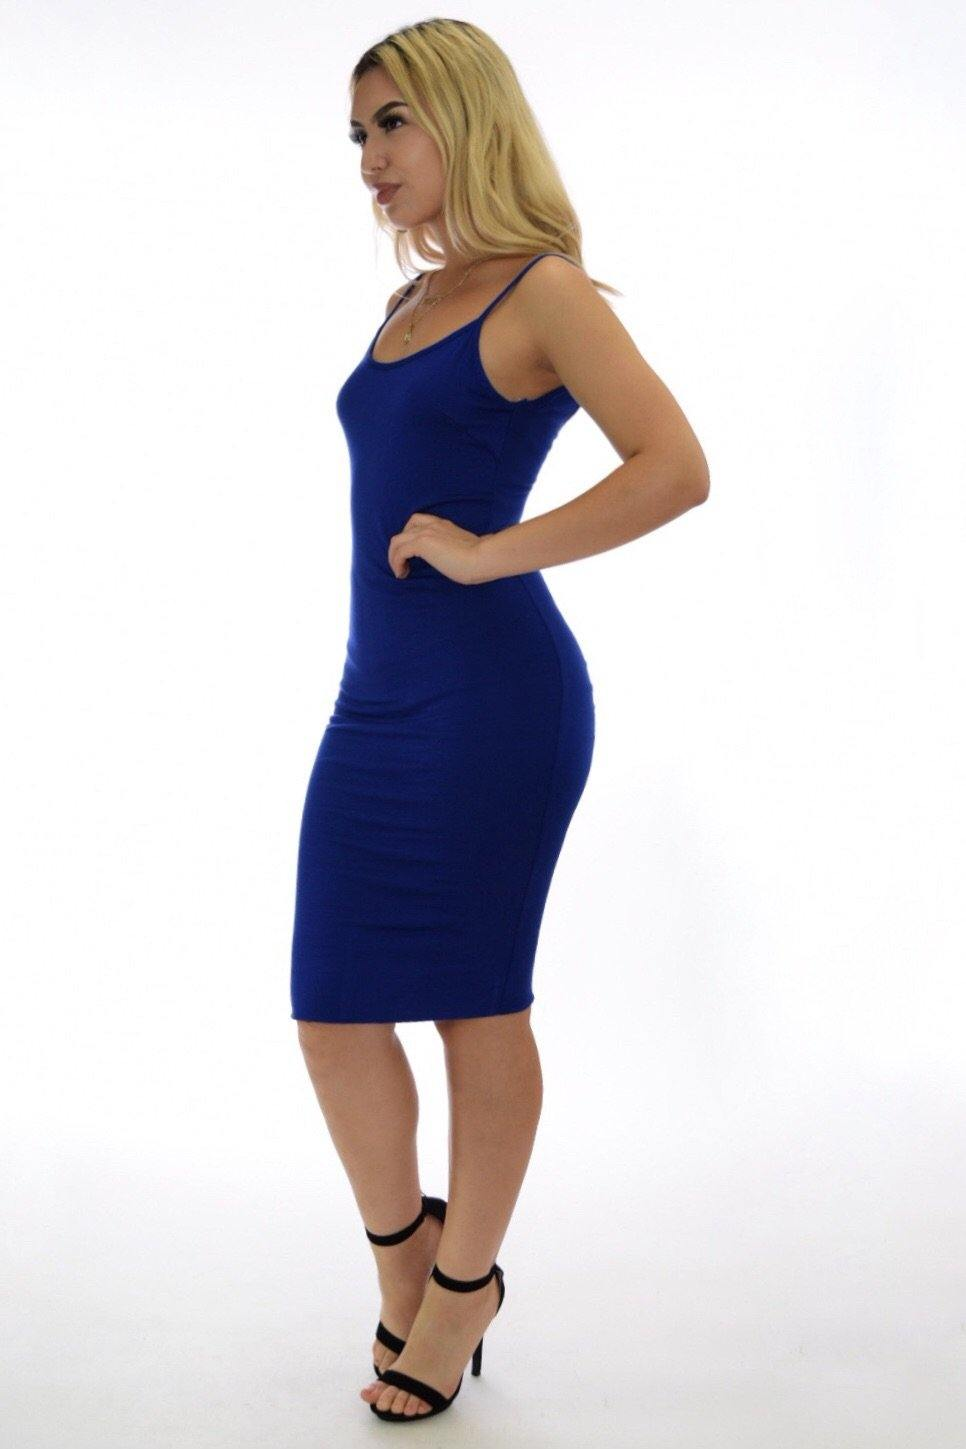 Vanessa royal blue dress with deep V-cut on back